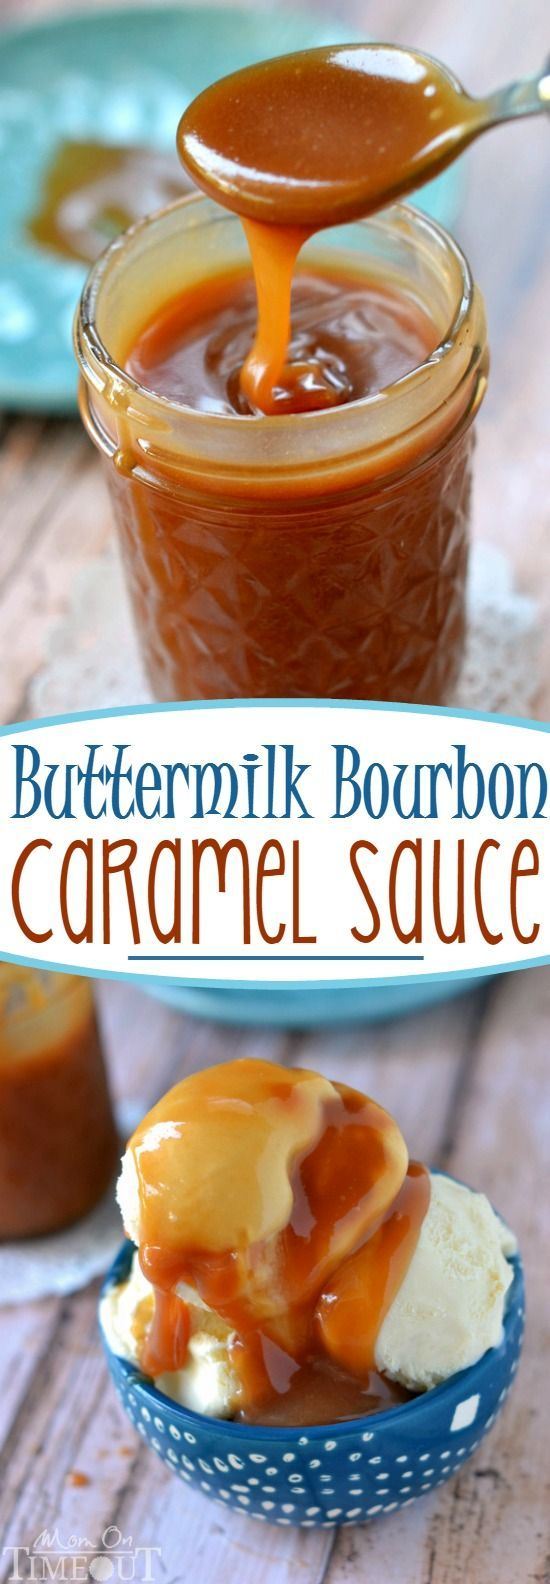 You may never buy caramel sauce again after you make this incredible Buttermilk Bourbon Caramel Sauce – bourbon optional!